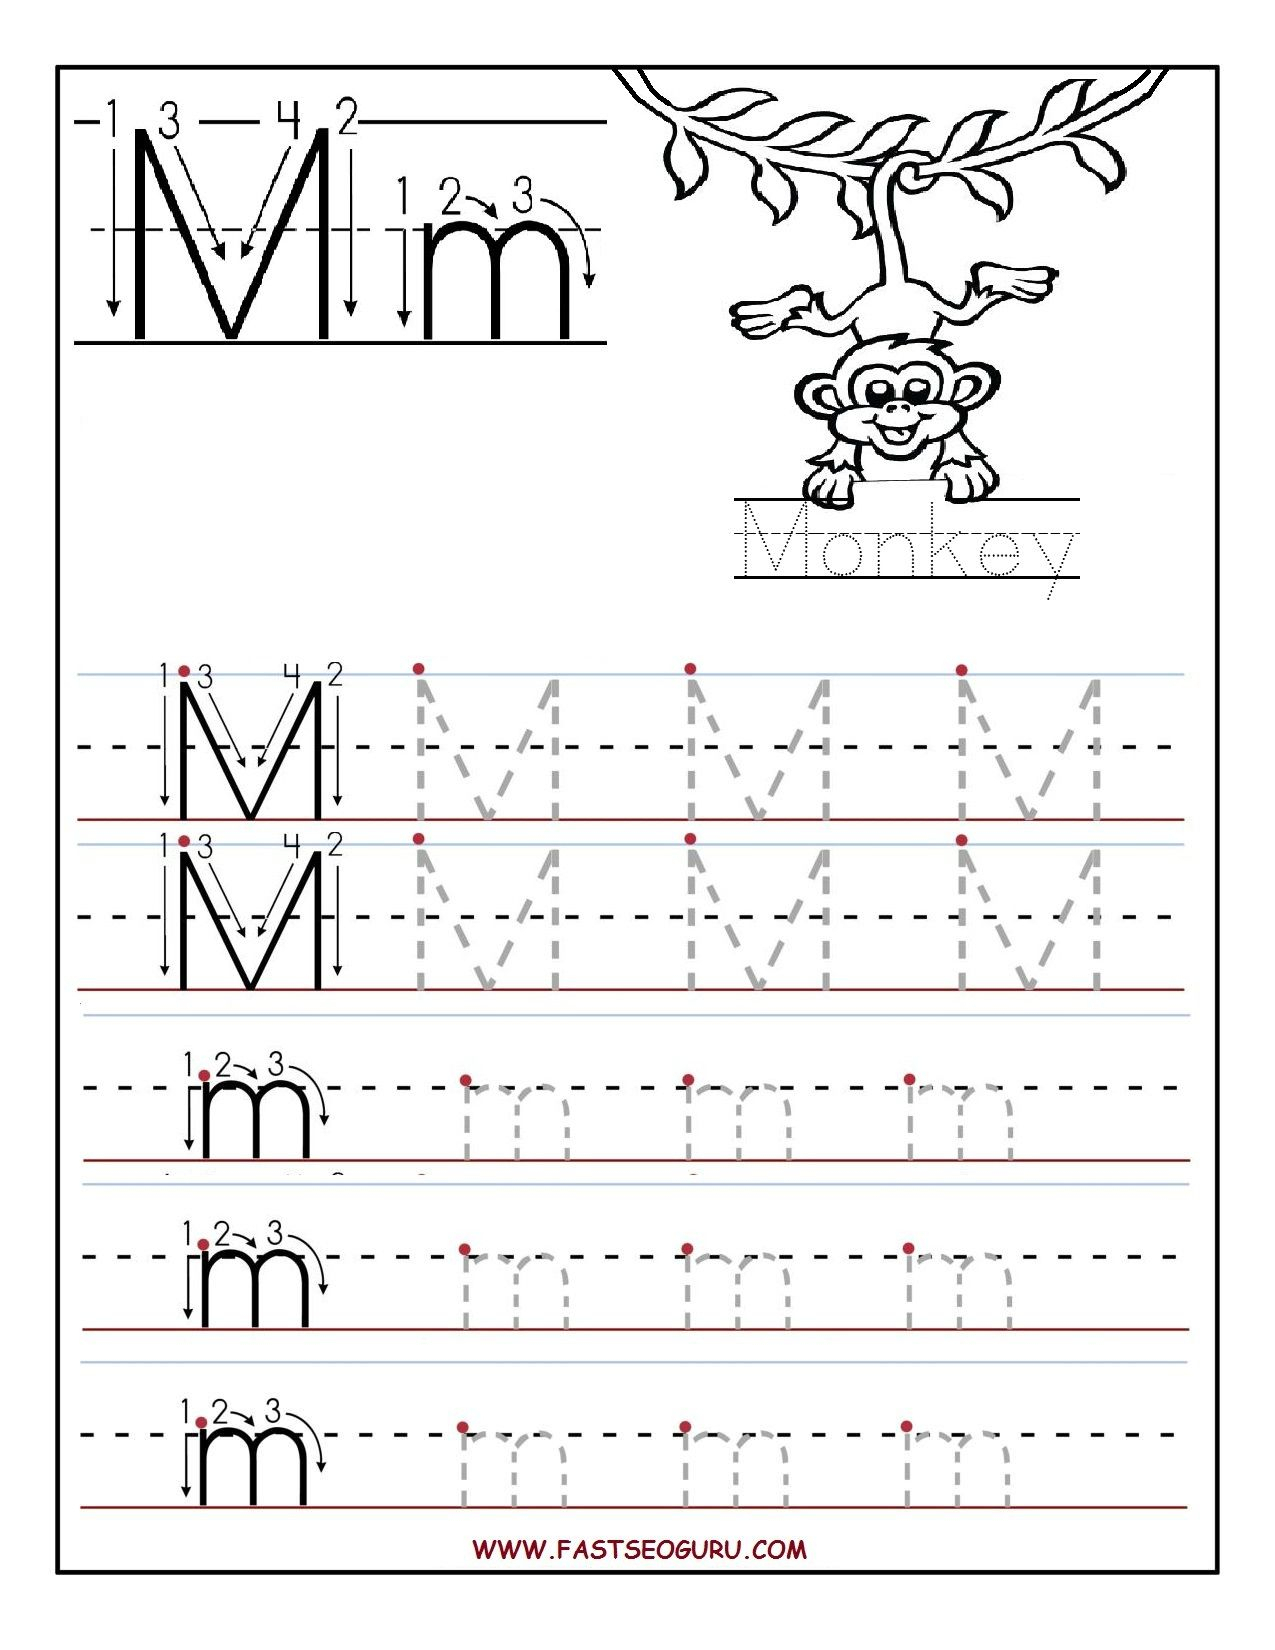 Printable Letter M Tracing Worksheets For Preschool in Letter M Worksheets Free